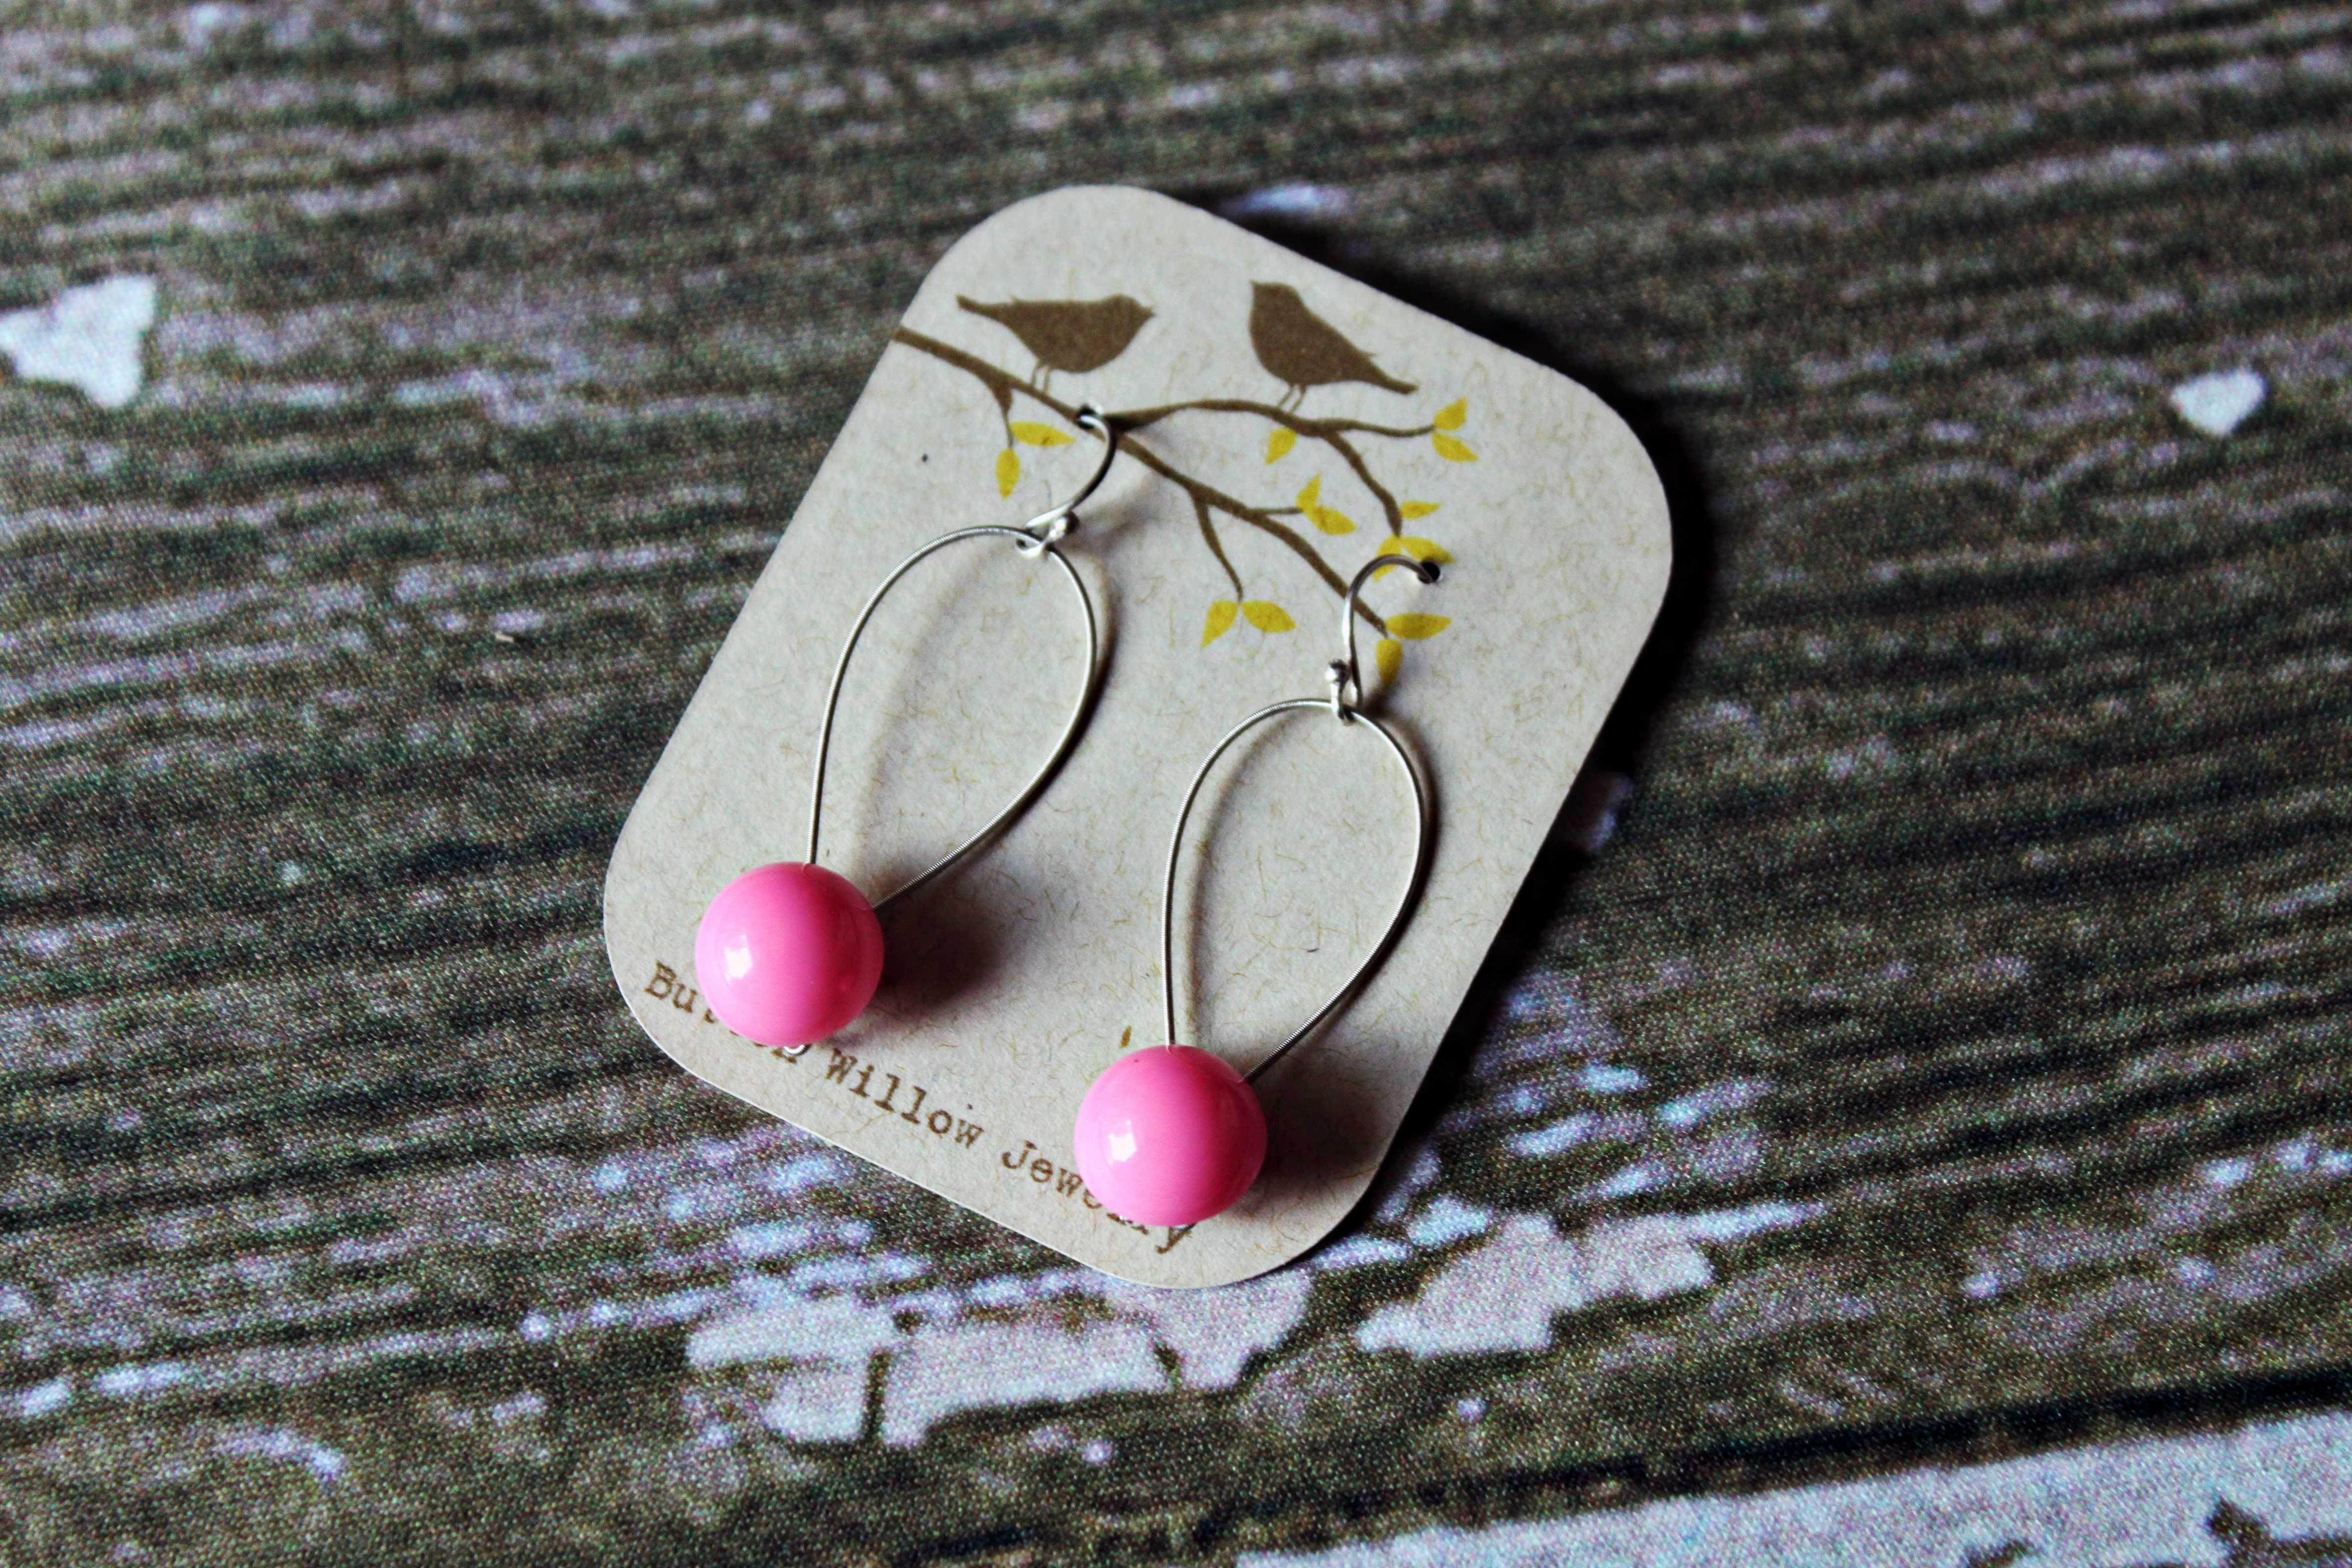 Super cute pink button earrings! http://www.etsy.com/shop/ButtonWillowJewelry